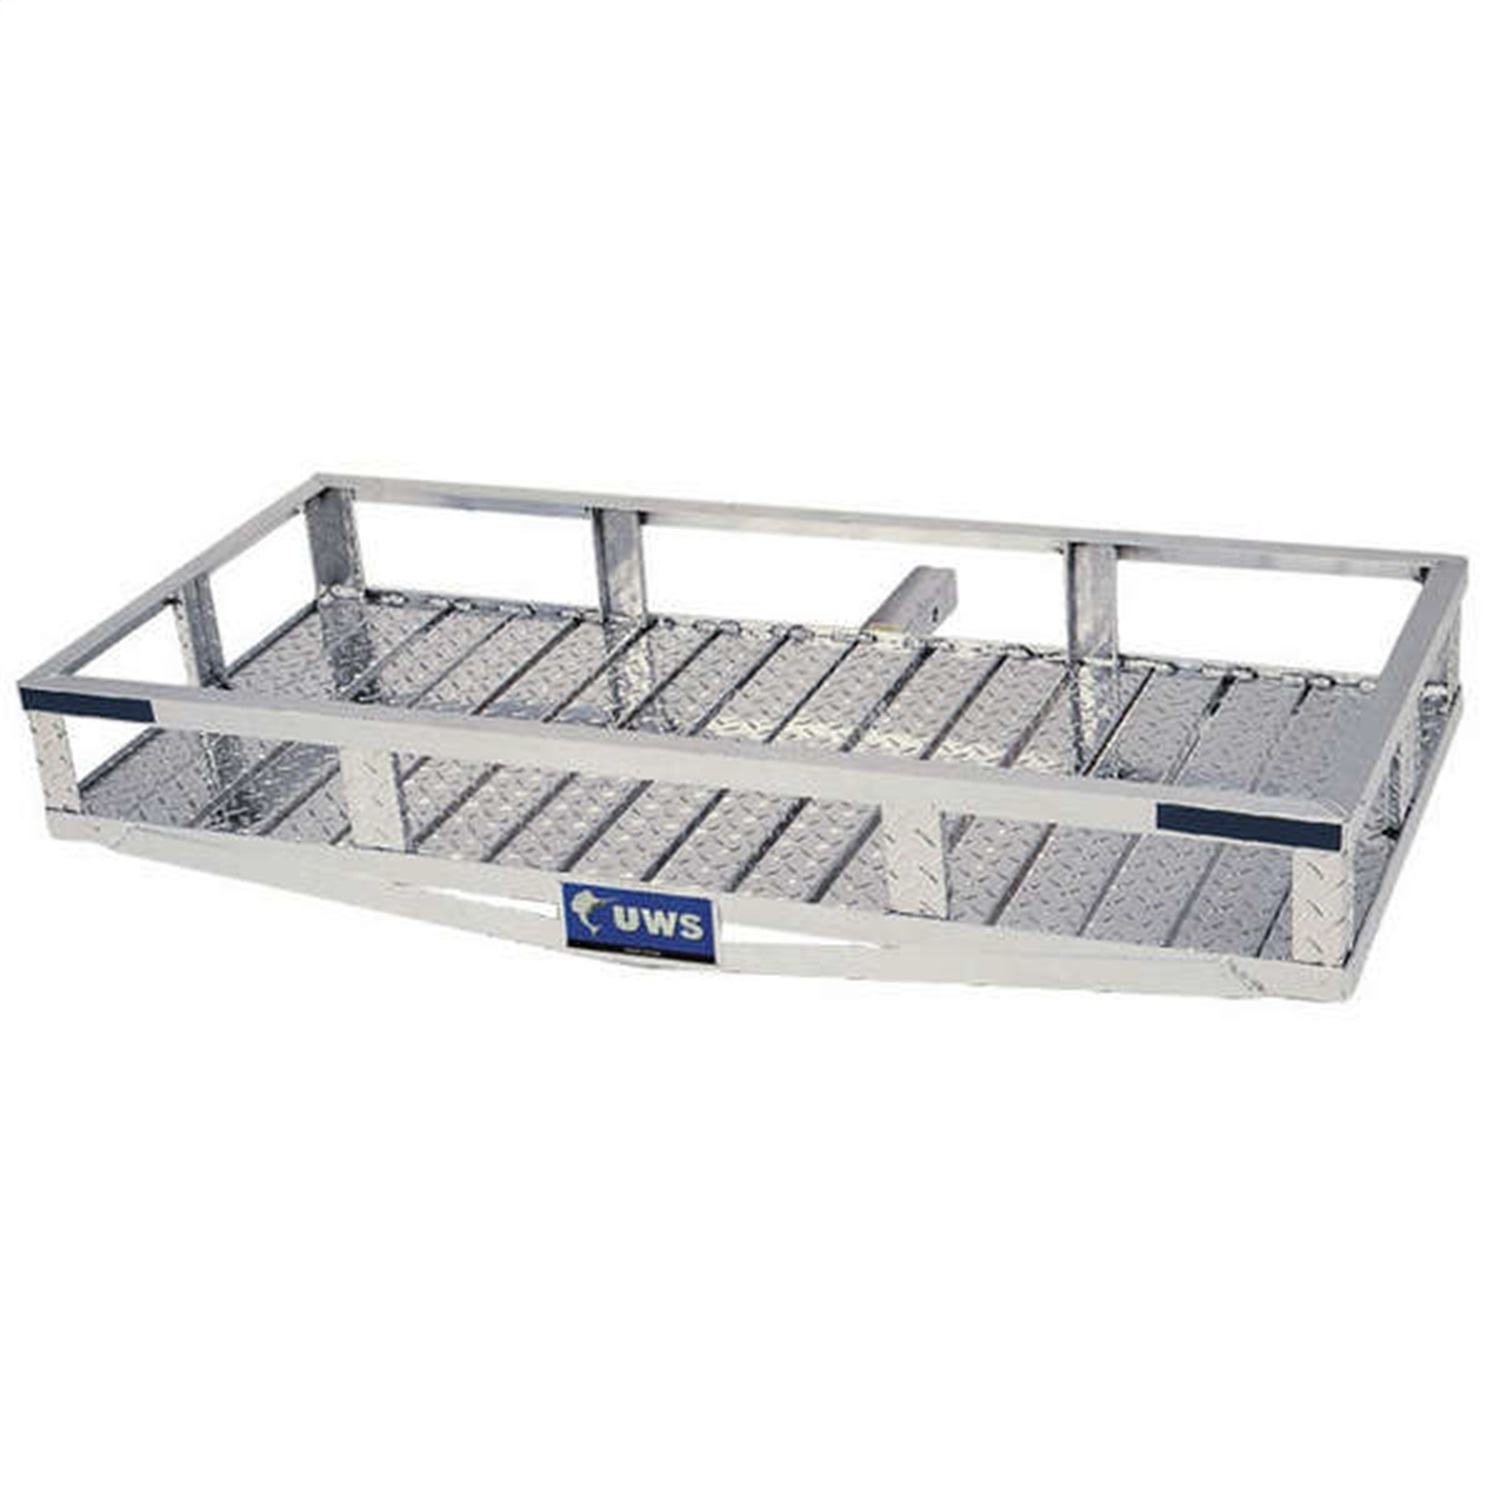 Uws Uws Carrier Aluminum Cargo Carrier Ebay